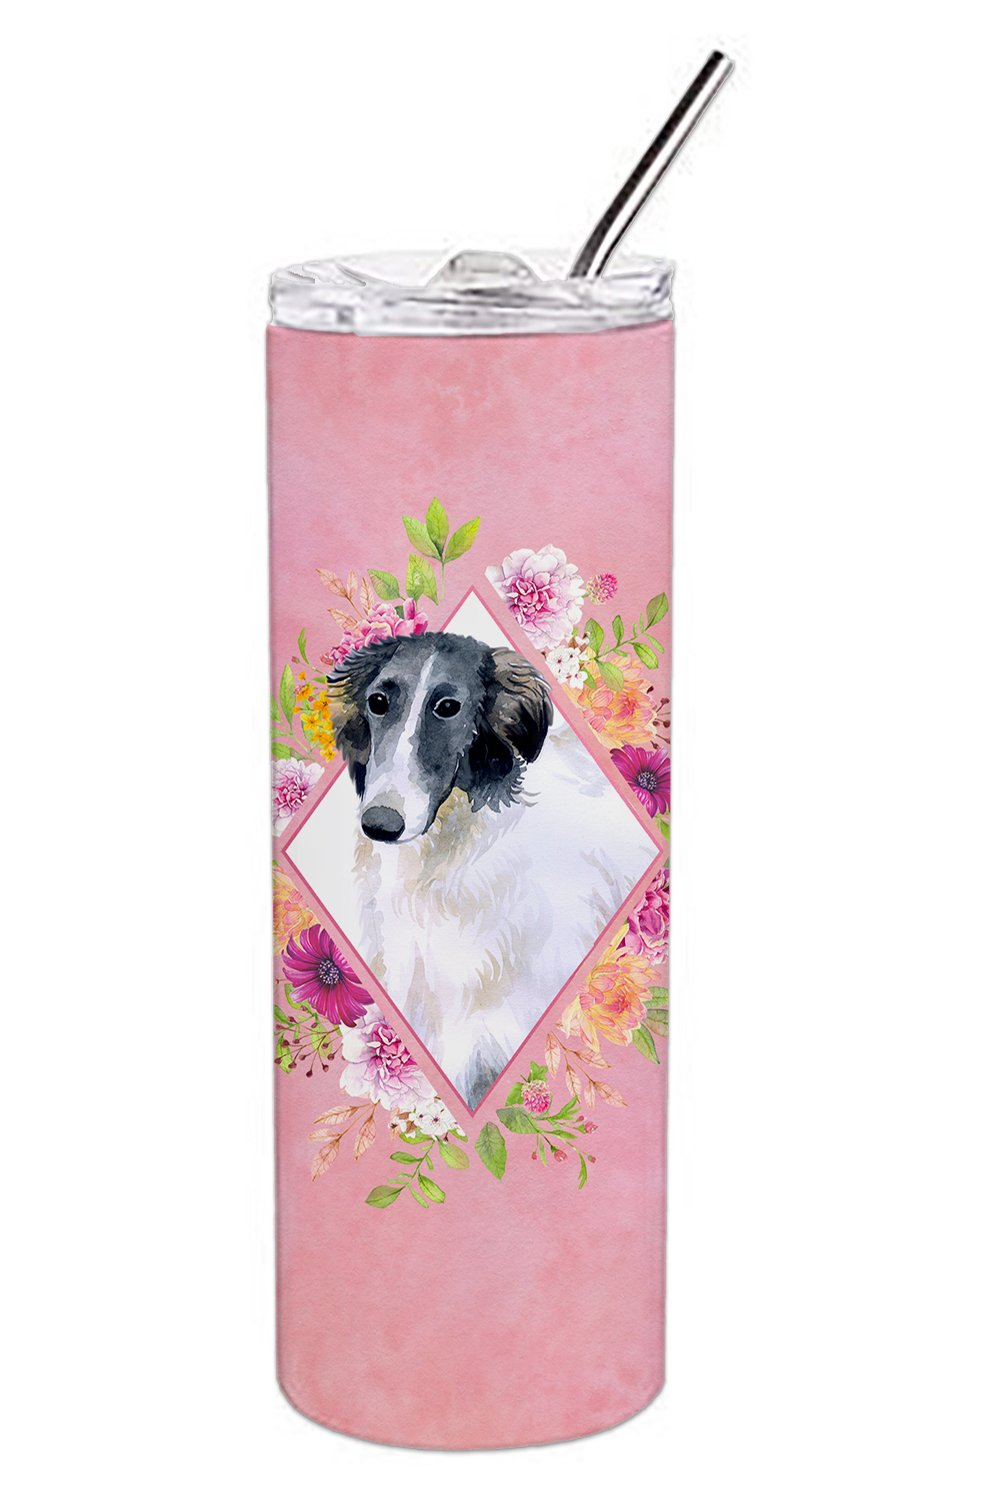 Borzoi Pink Flowers Double Walled Stainless Steel 20 oz Skinny Tumbler CK4122TBL20 by Caroline's Treasures